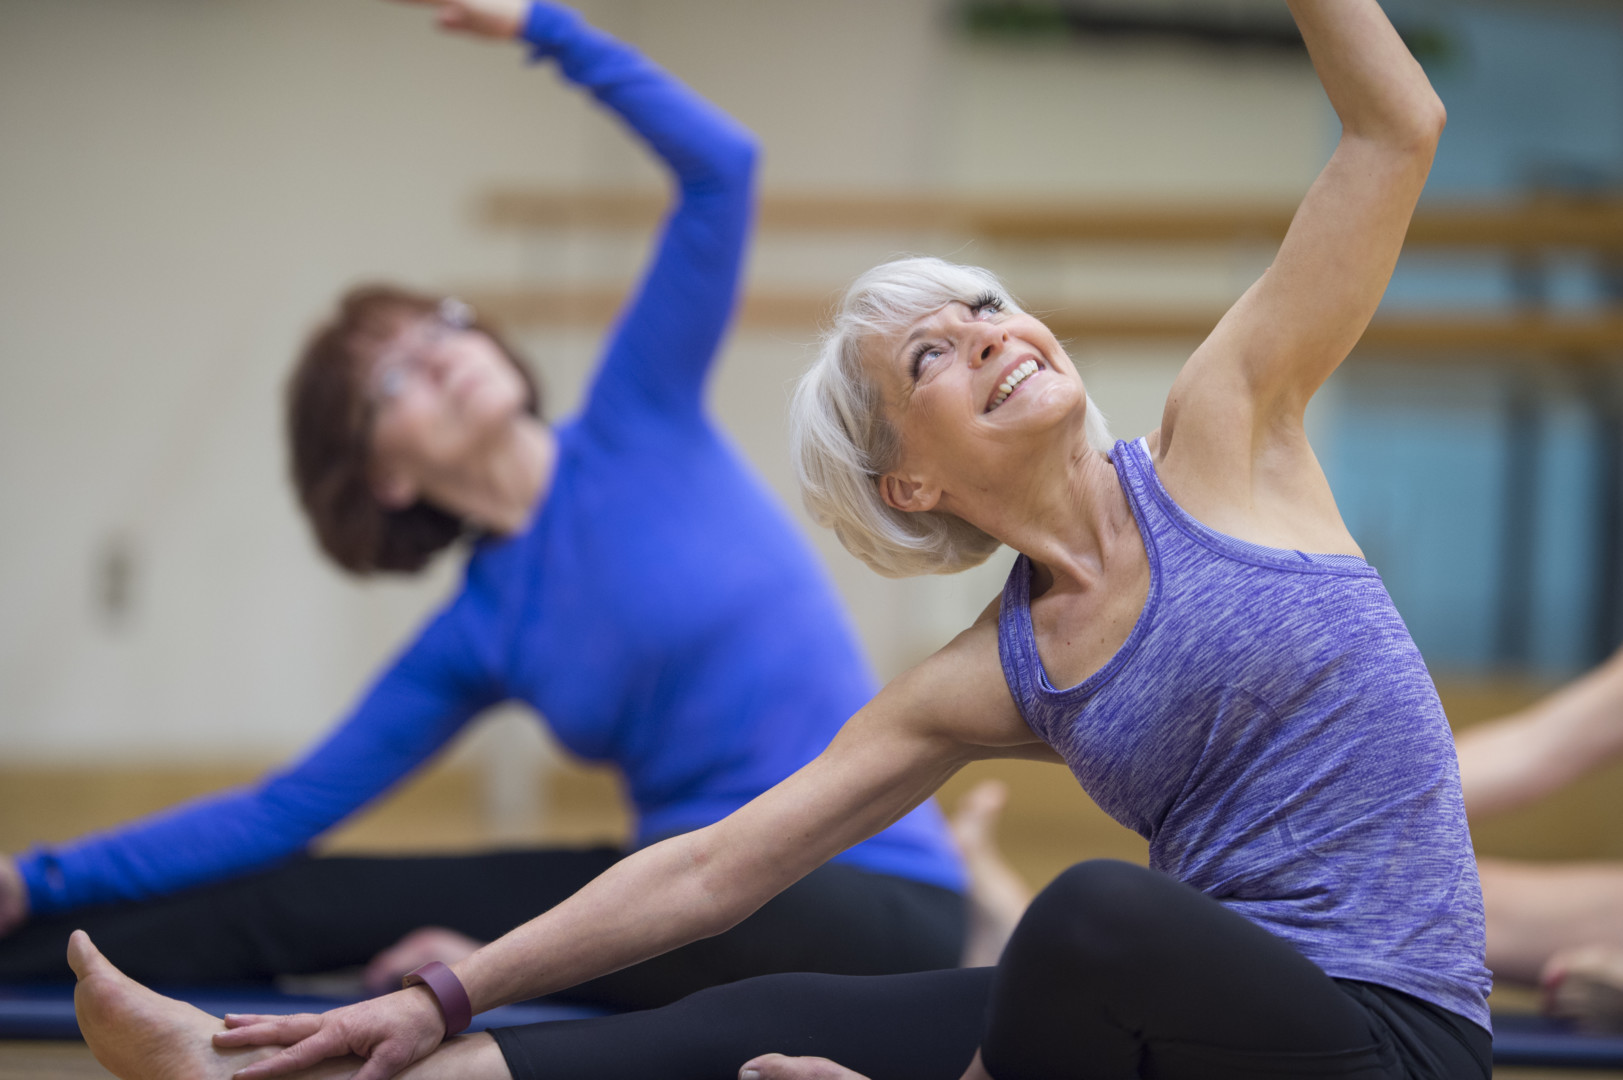 A multi-ethnic group of senior adult women are taking a yoga class together at the gym.